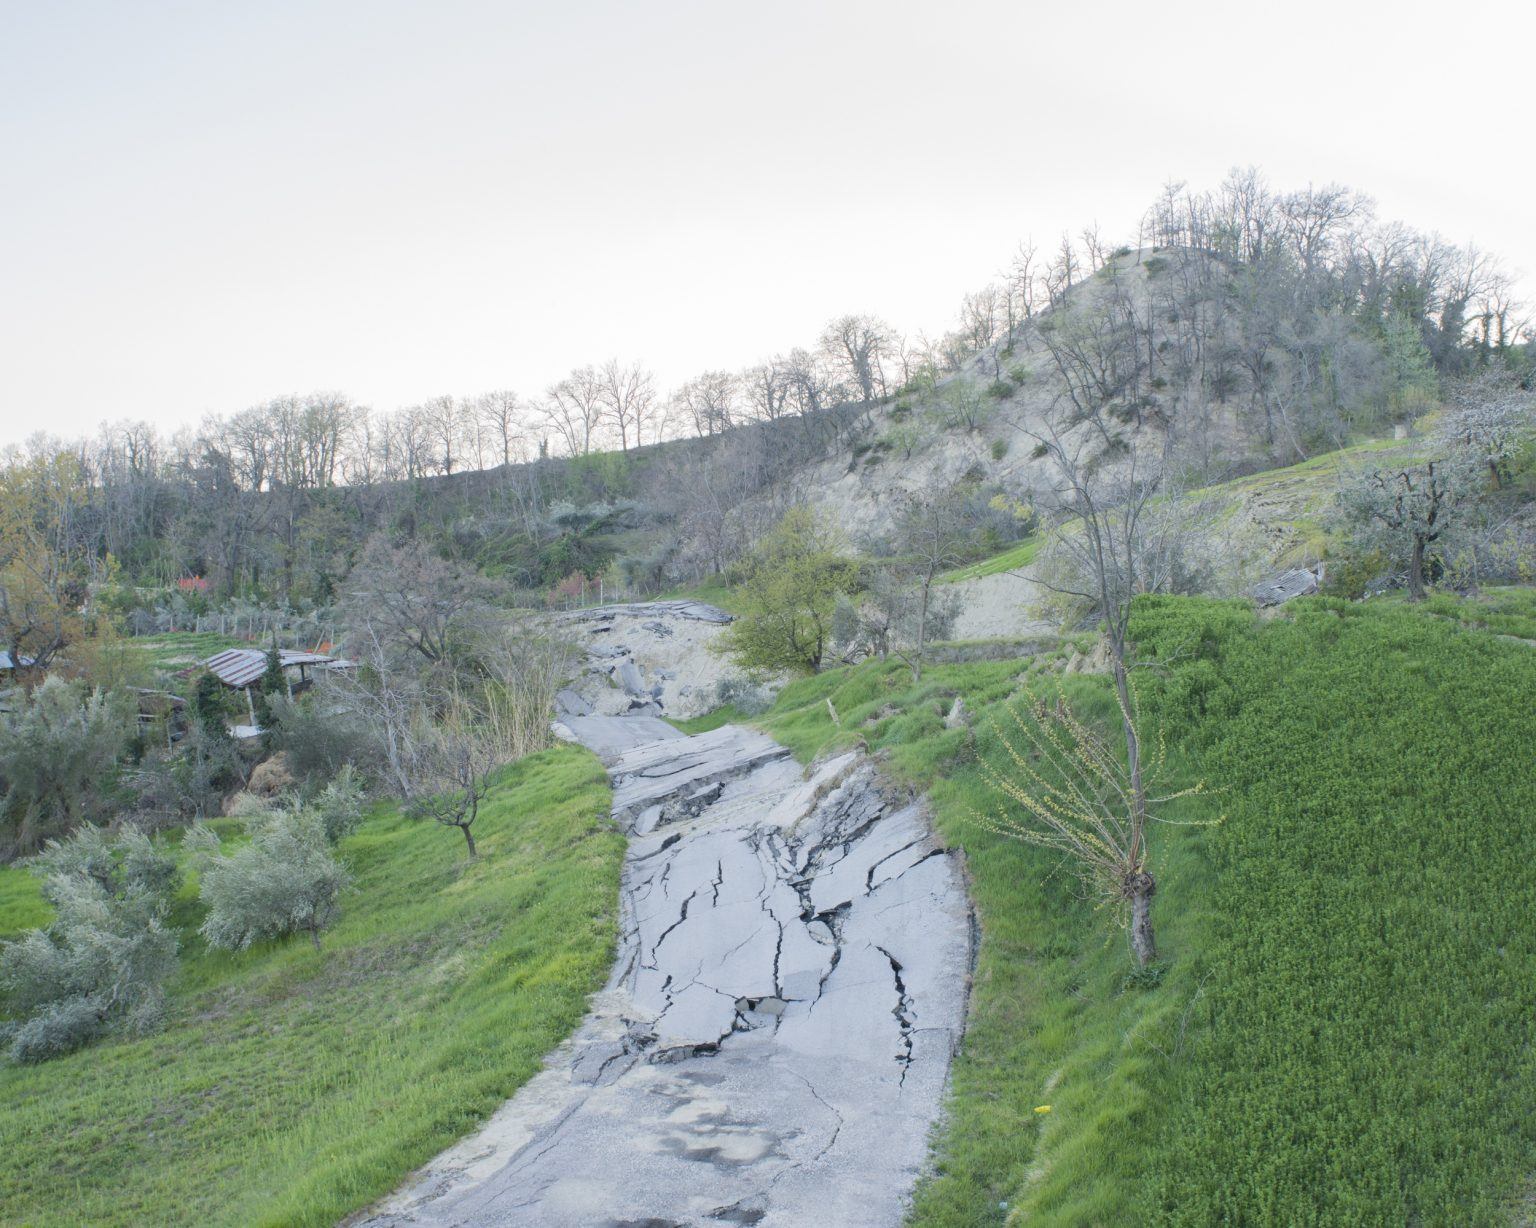 Landslide-prone slope threatening the inhabited centre. The landslide was activated on 12 February 2017. The causes of the event have been attributed to various factors: the earthquake tremors on 18 January 2017, the abundant rainfall, and the melting of the snow, all contributed to the instability of the terrain. Ponzano, Teramo, Italy, 2017